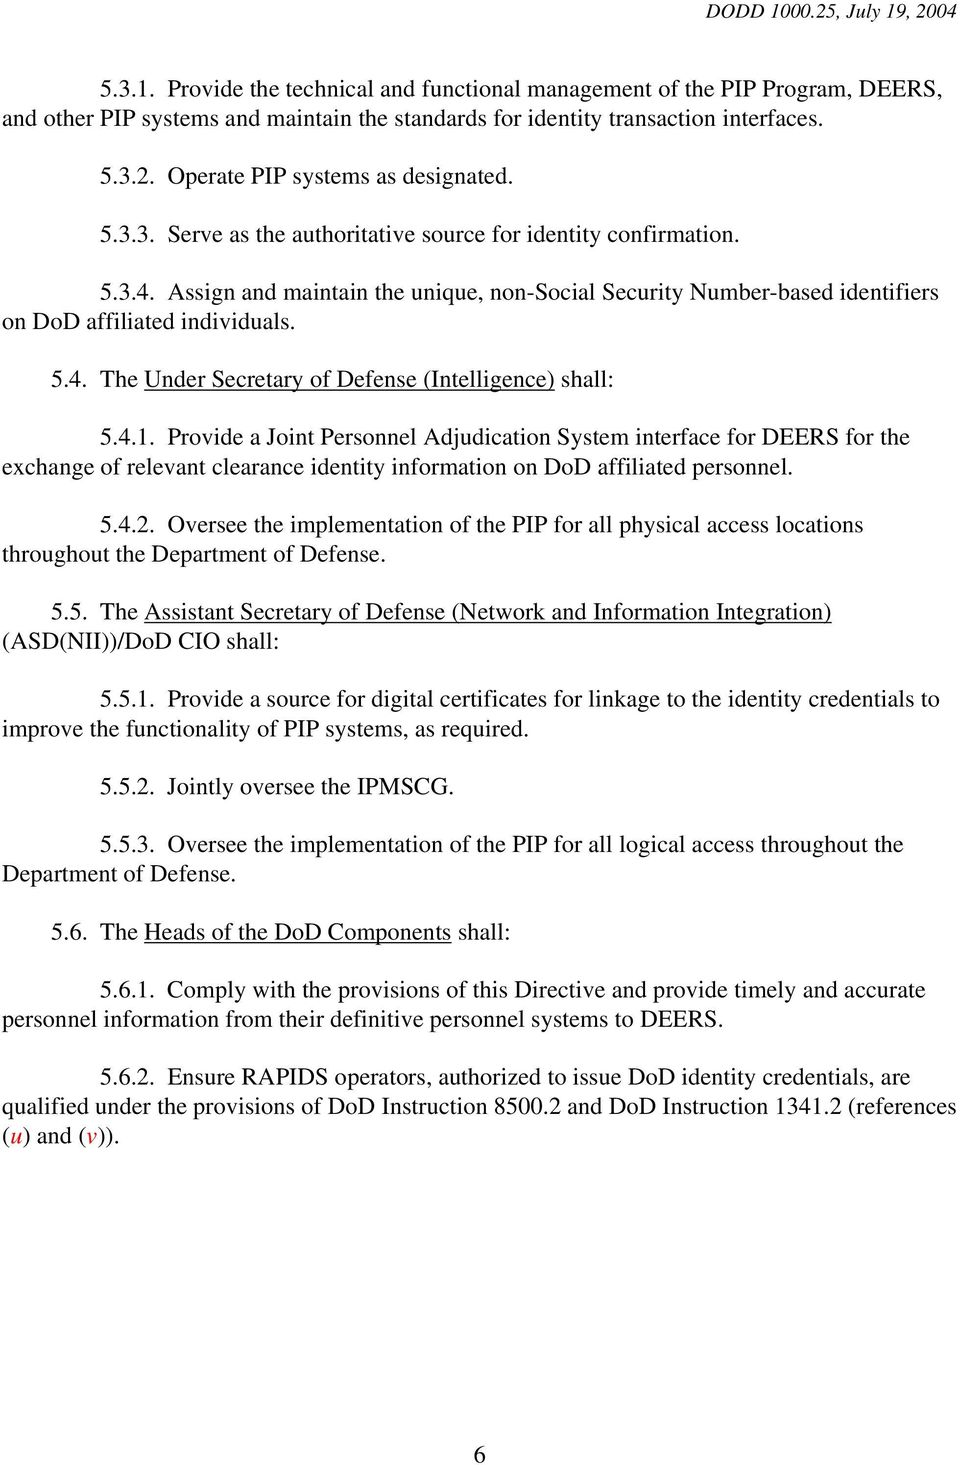 Assign and maintain the unique, non-social Security Number-based identifiers on DoD affiliated individuals. 5.4. The Under Secretary of Defense (Intelligence) shall: 5.4.1.